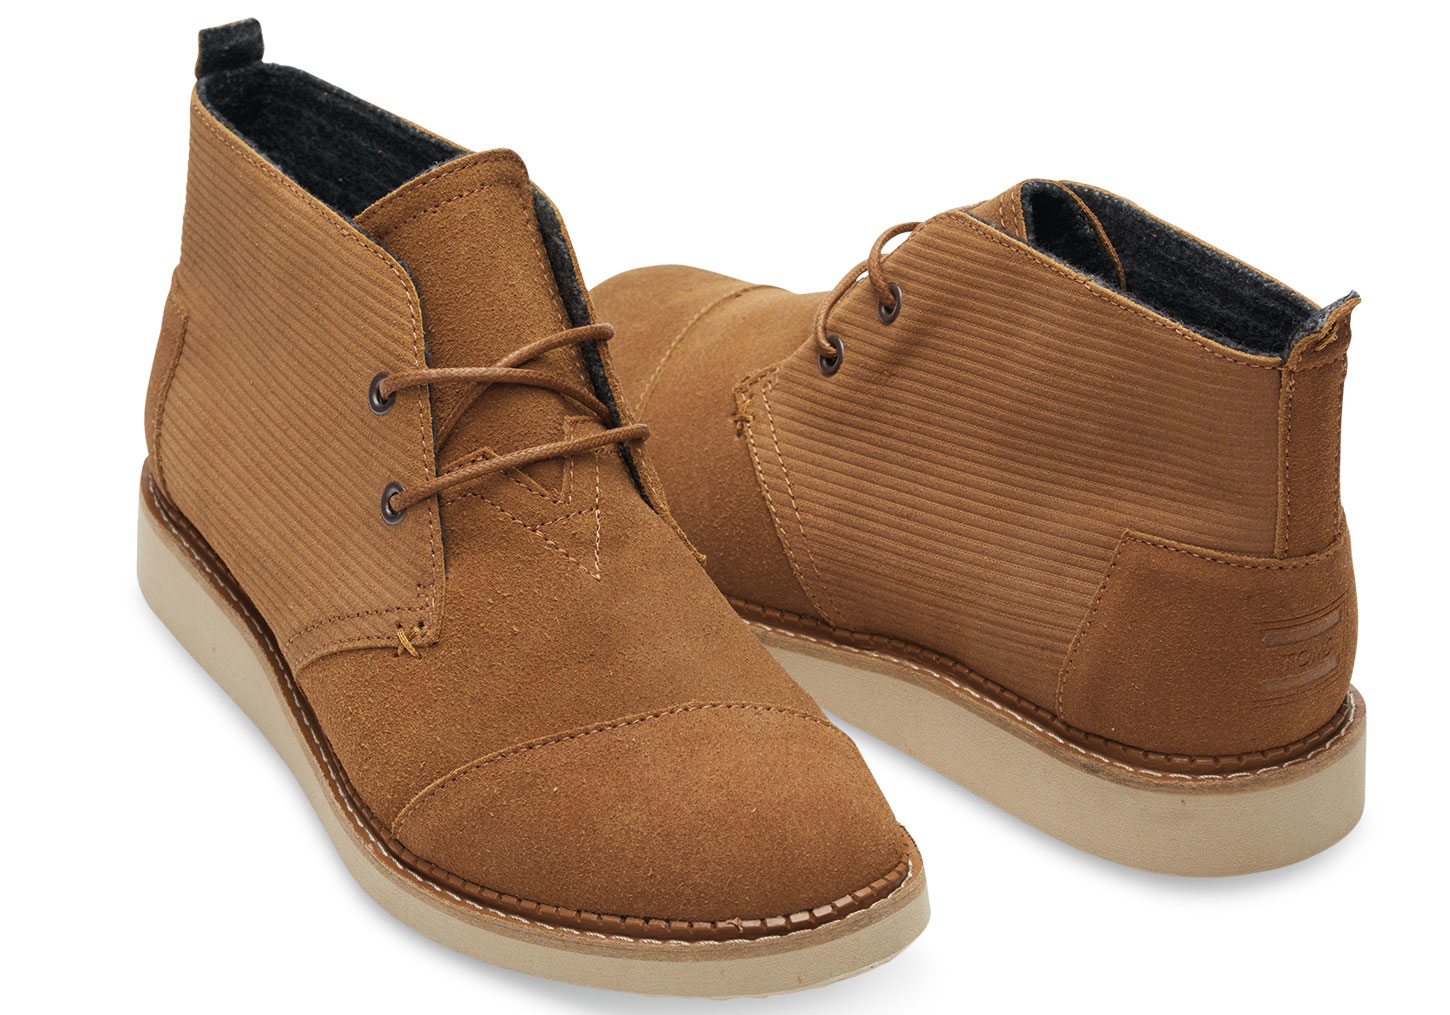 Toms Chestnut Brown Embossed Suede Men's Mateo Chukka Boots in ...